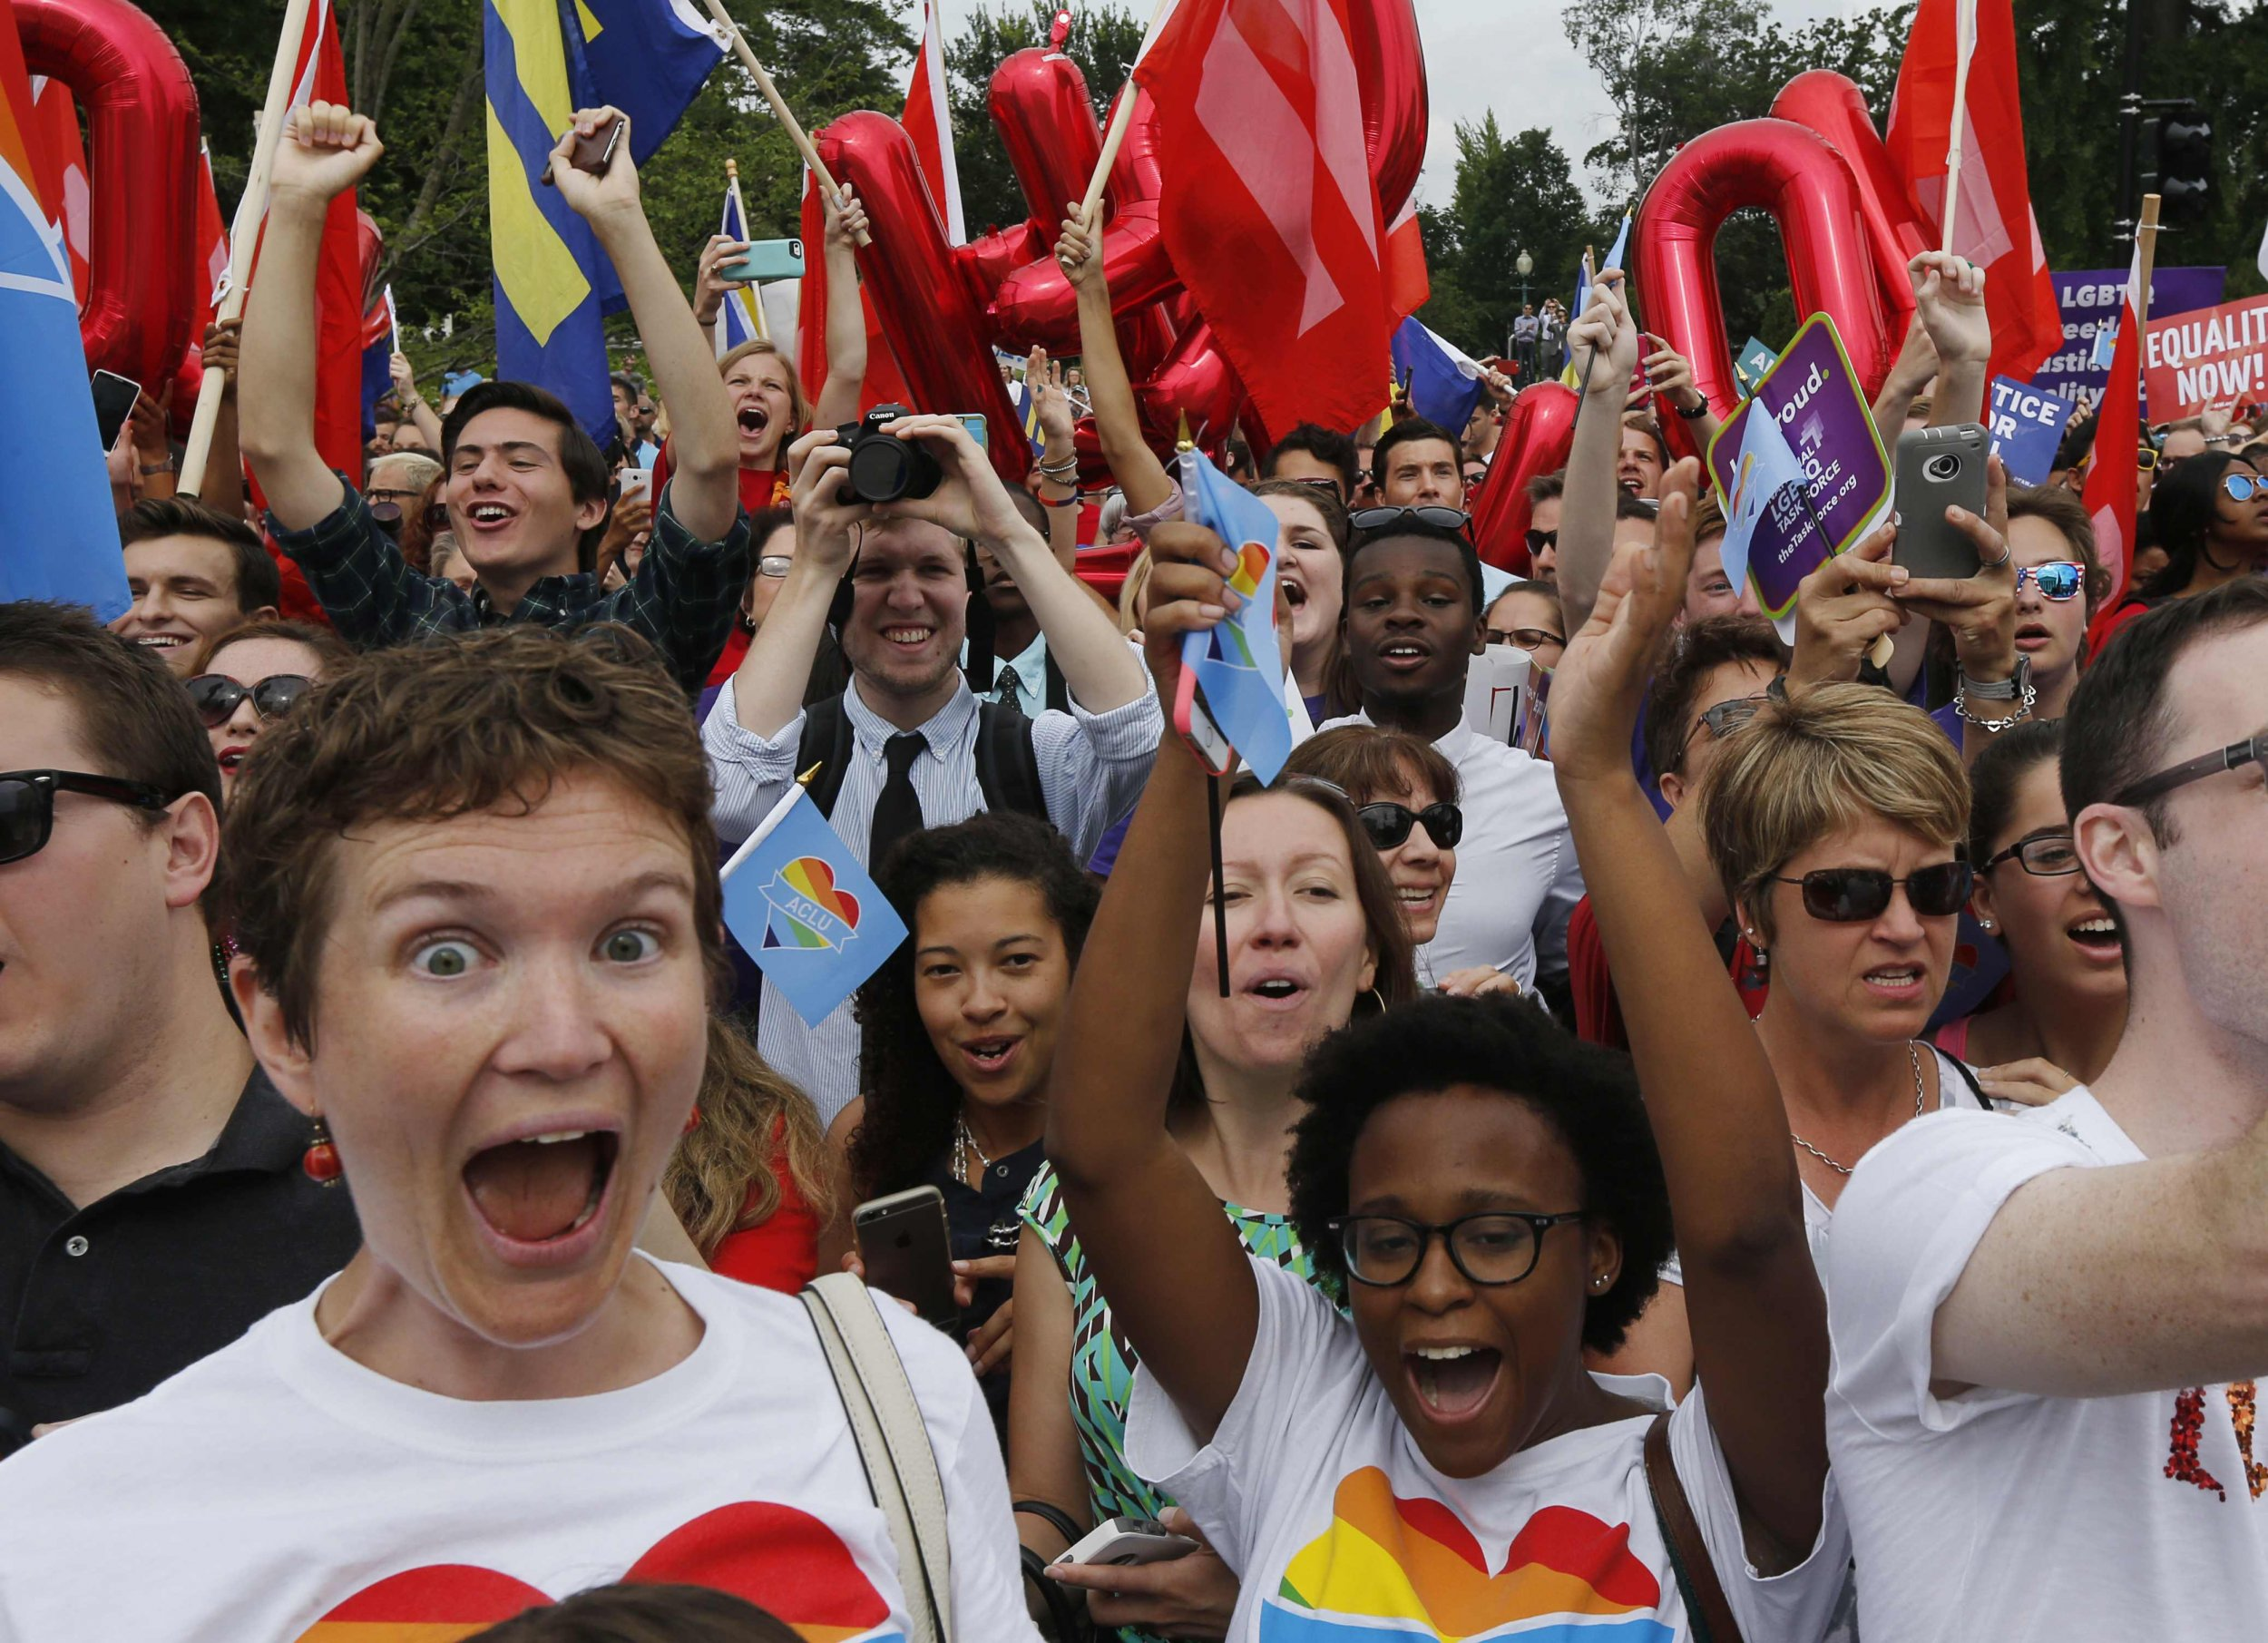 Supreme court victory for gay